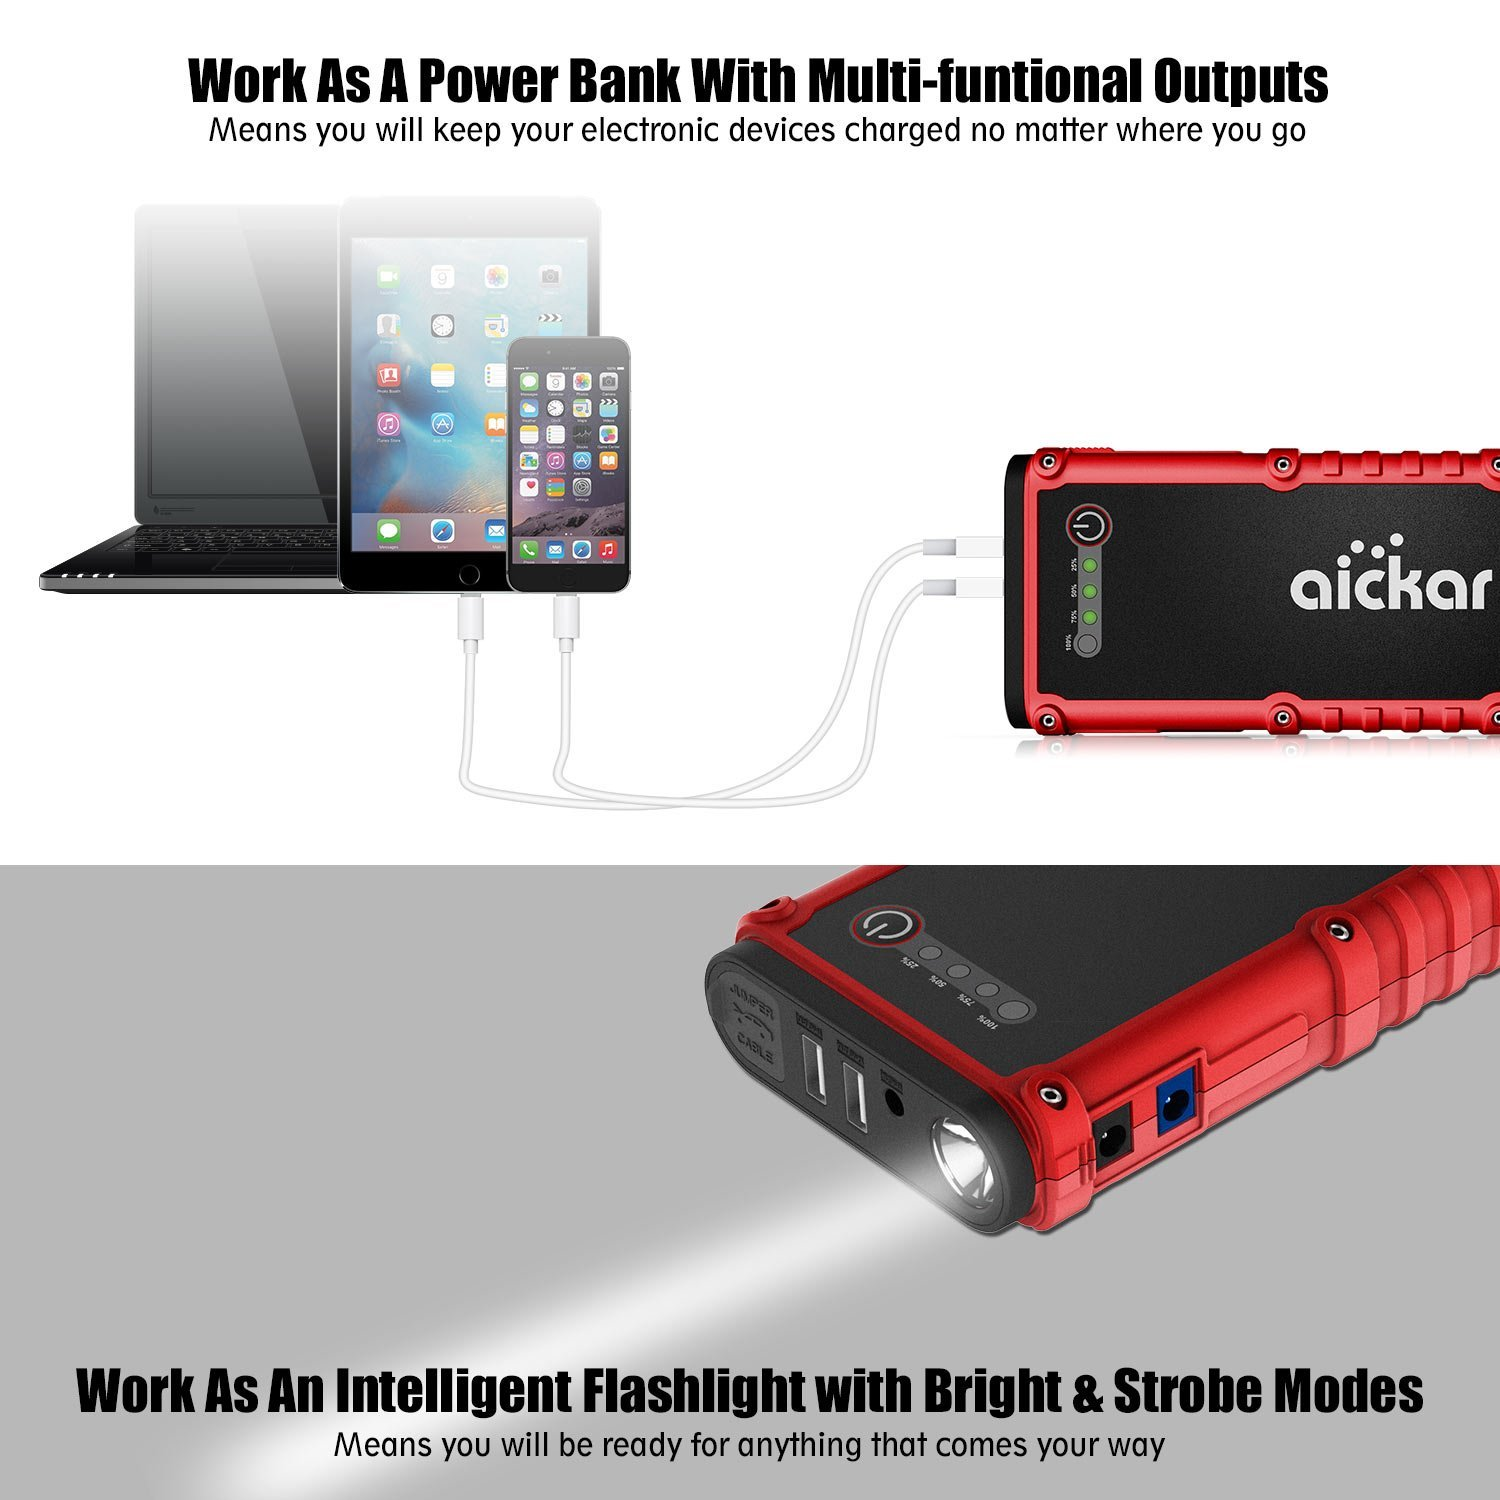 Aickar 800A Peak 19800mAh Car Jump Starter (All Gas & 4.5L Diesel Engine) Portable Car Battery Jump Starter, Power Bank, Built-in LED Flashlight with Car Jumper Cables Heavy Duty by aickar (Image #4)